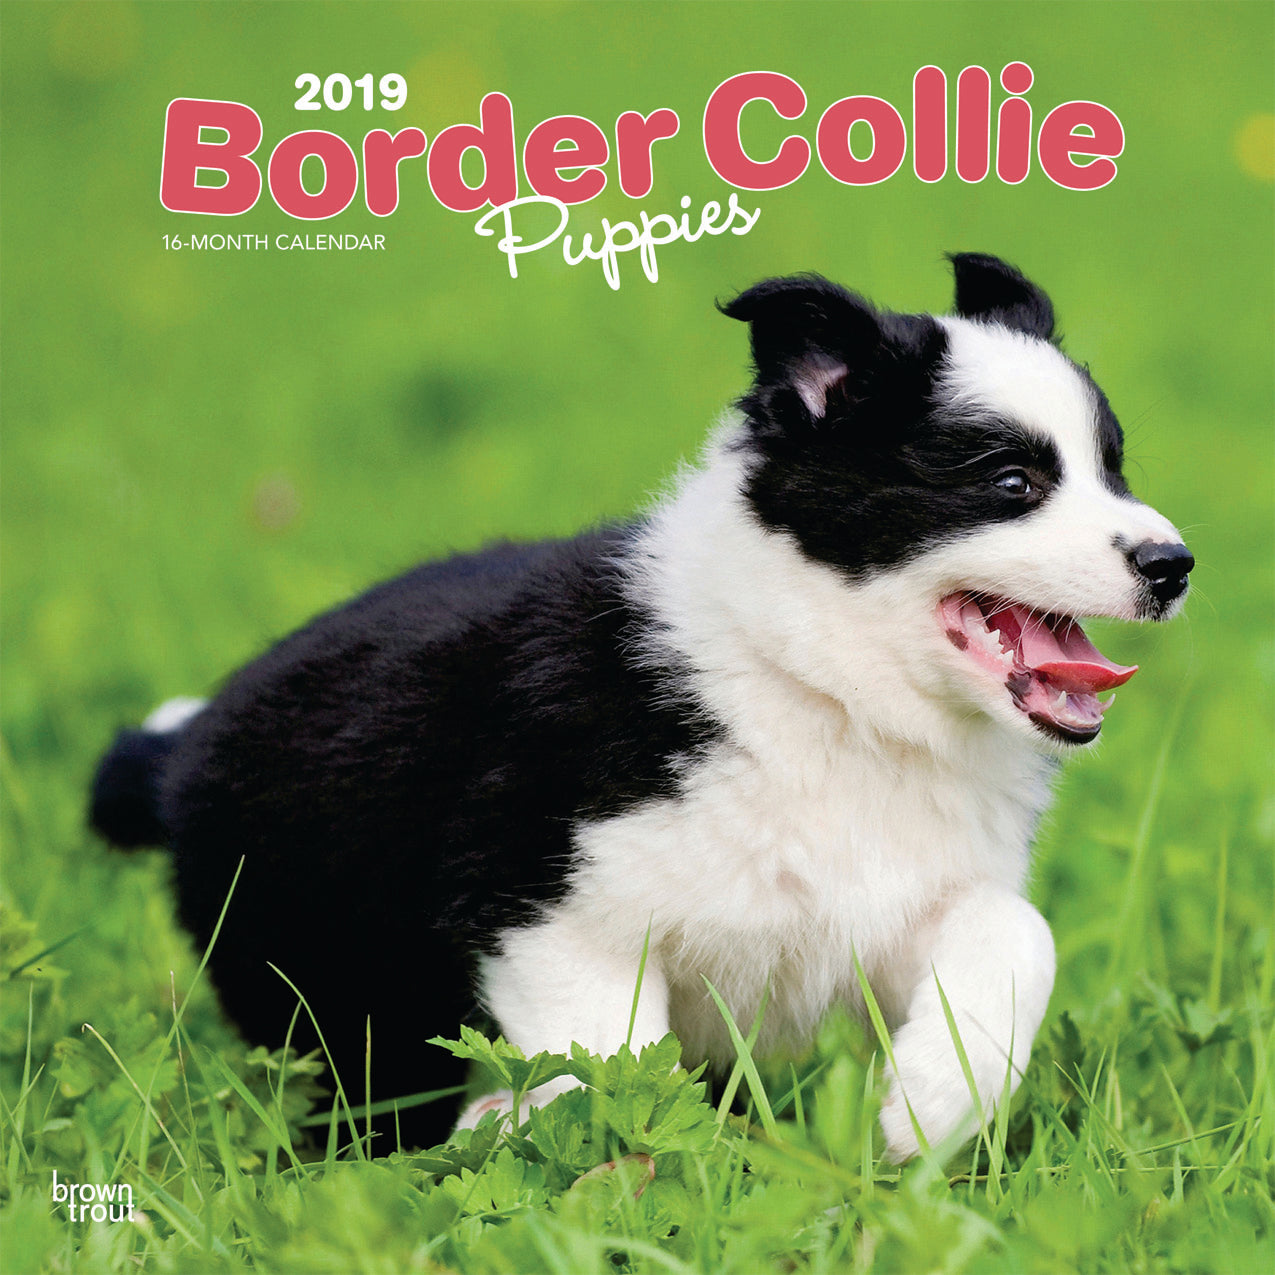 Border Collie Puppies 2019 Wall Calendar